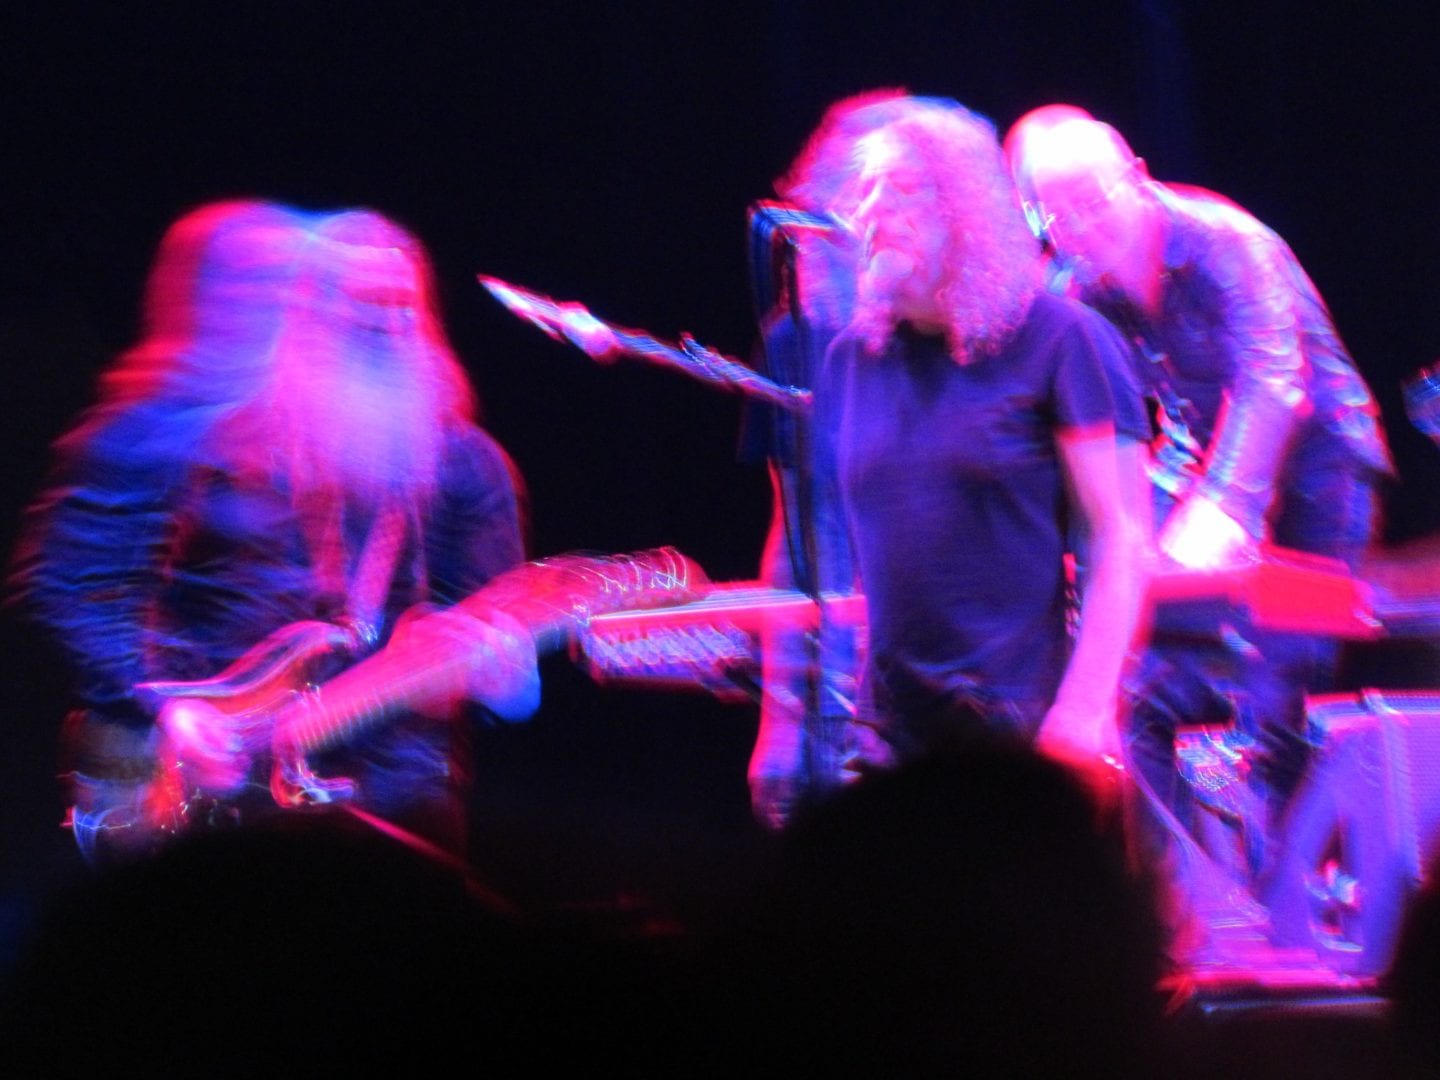 A blurry neon image of Robert Plant